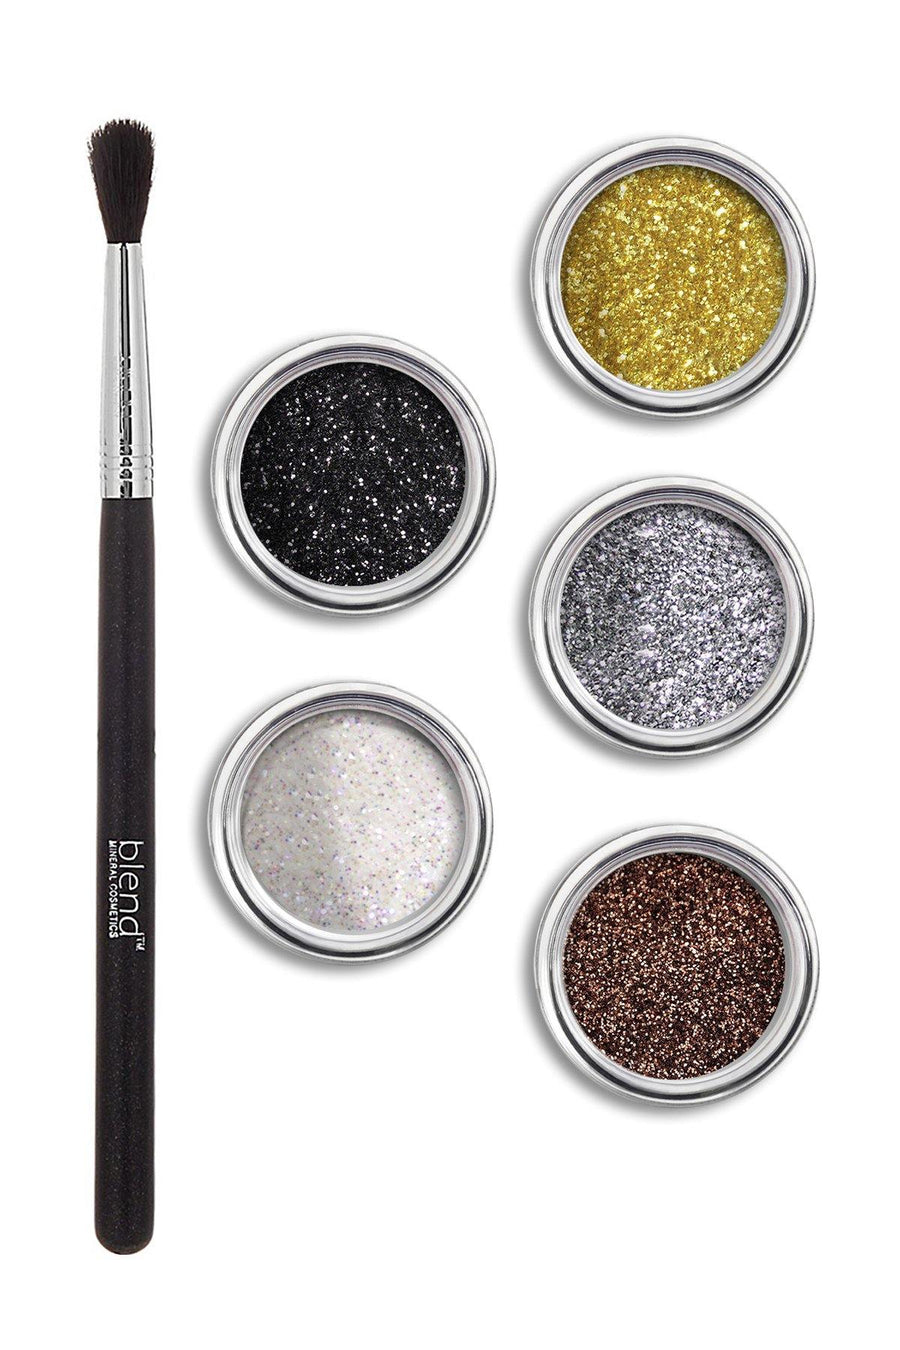 Darkness Glitter Bundle - Blend Mineral Cosmetics